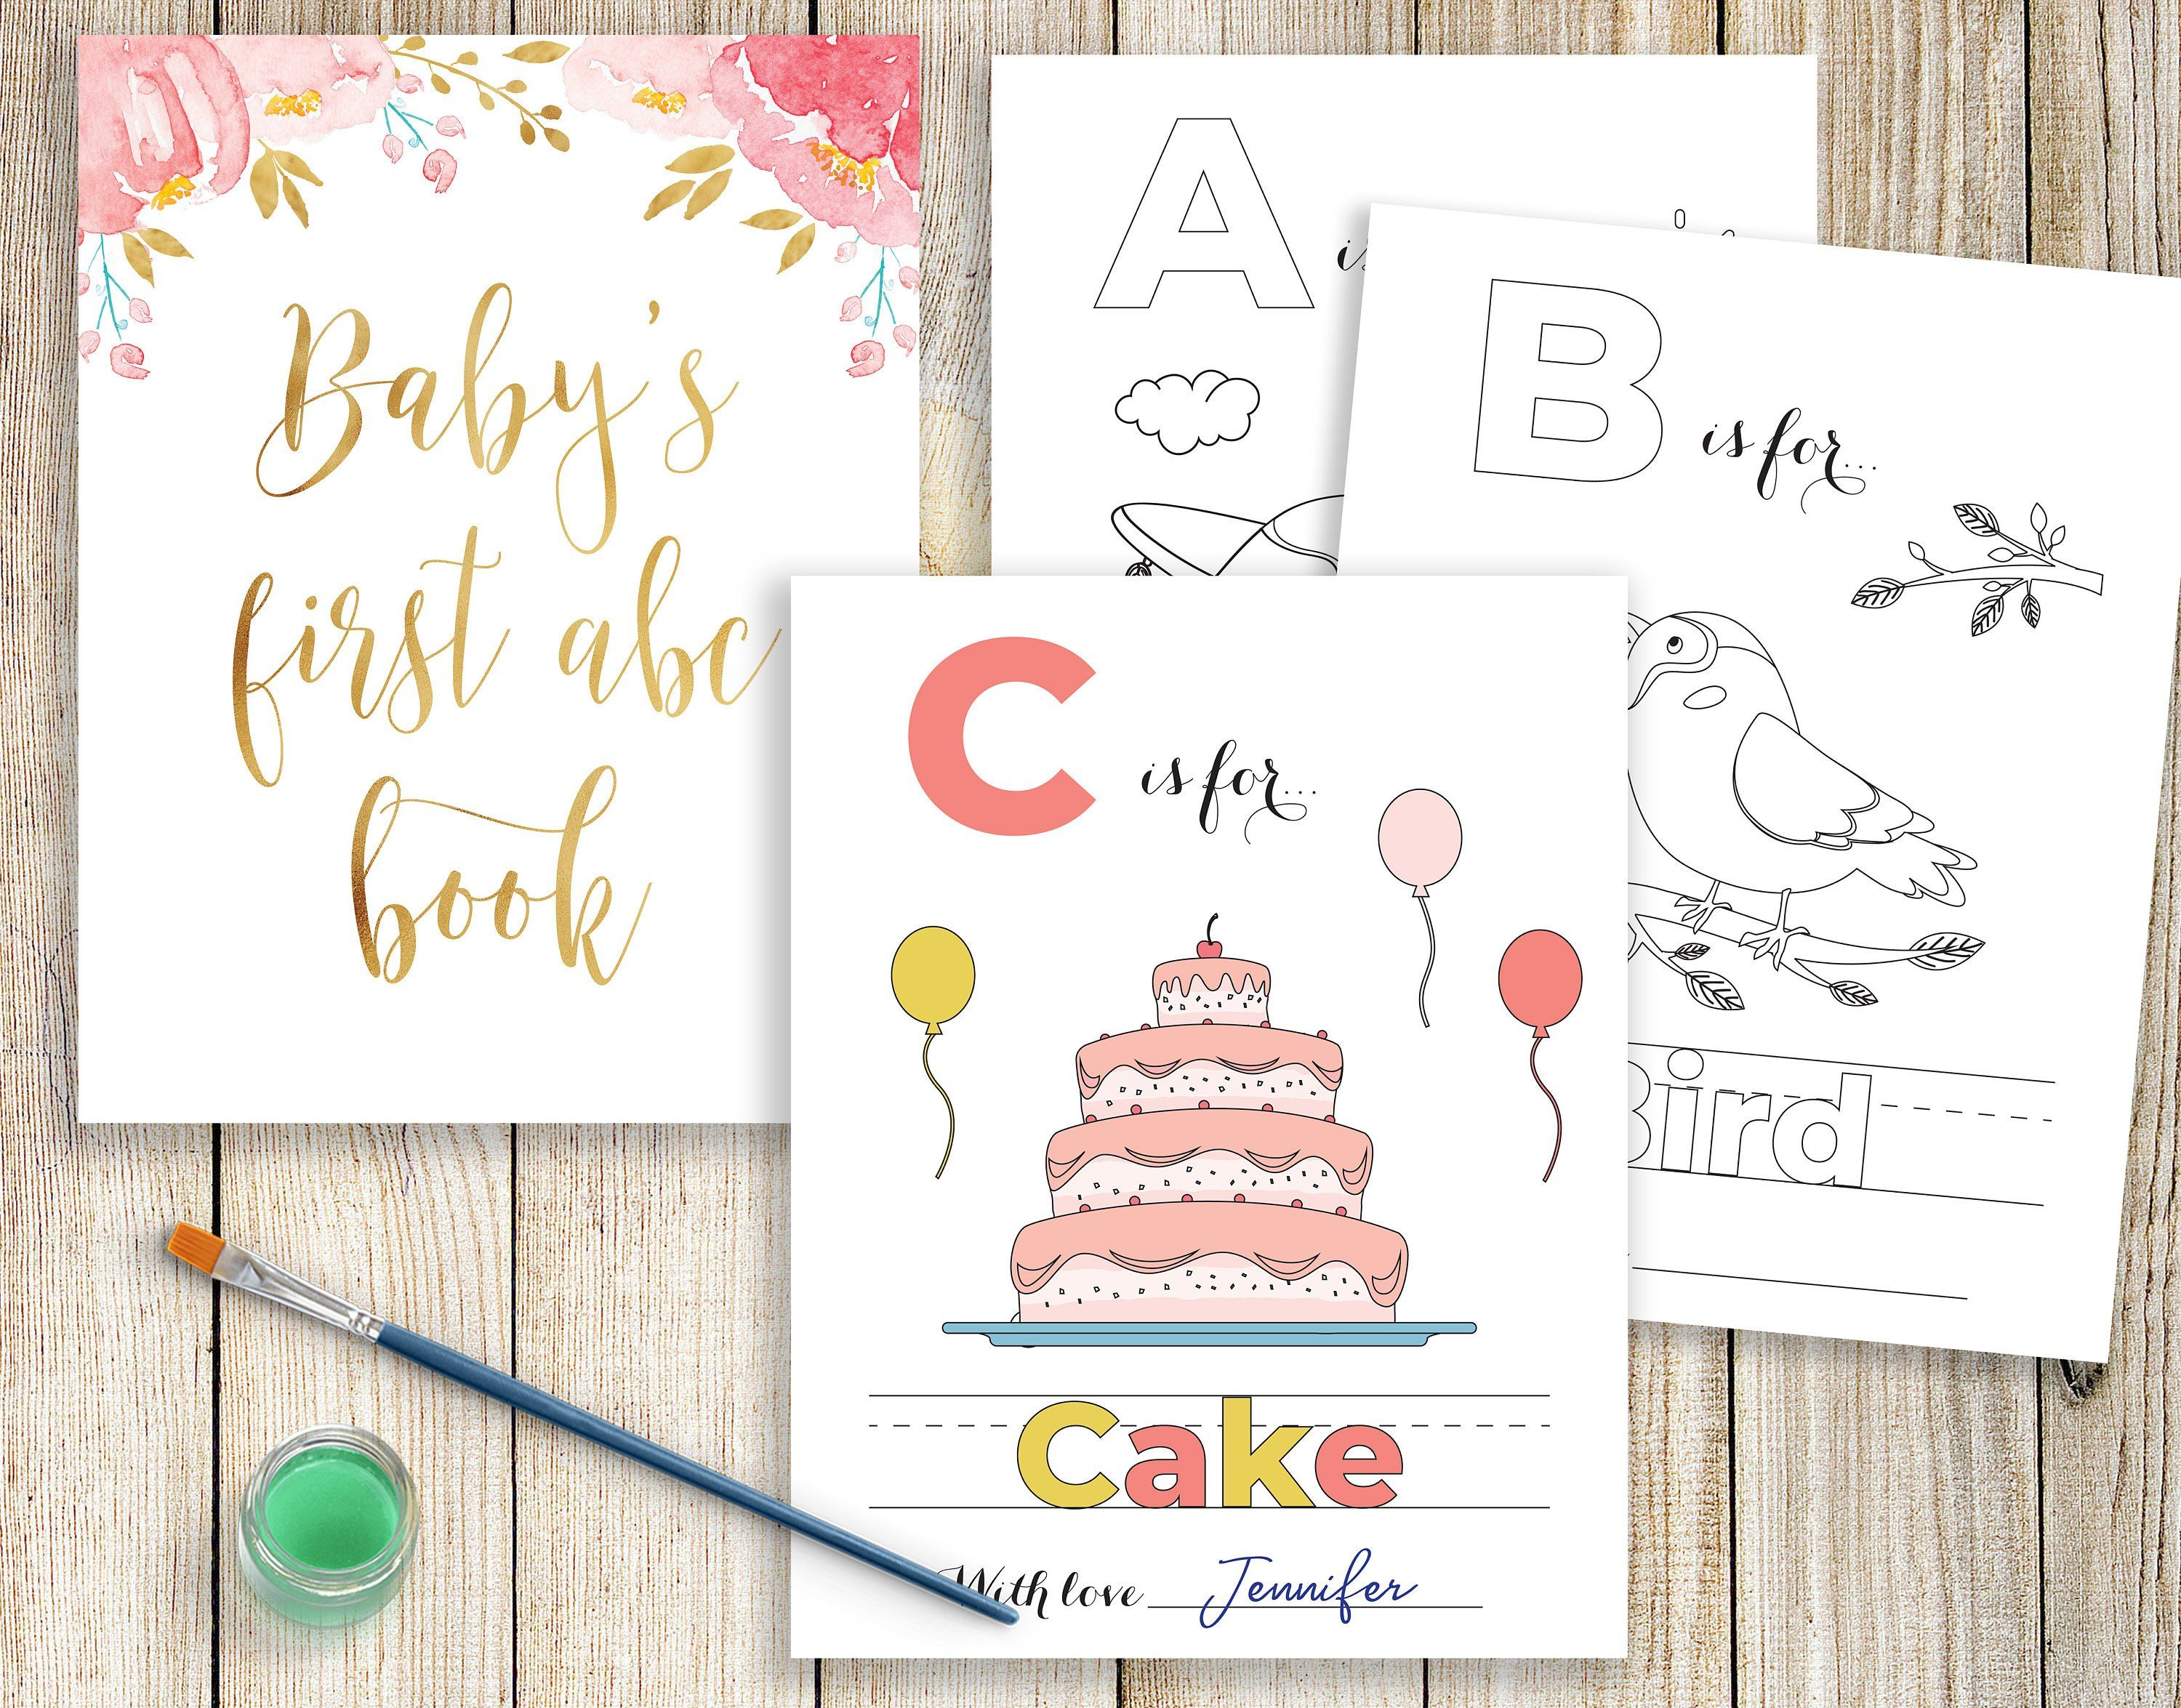 Baby S First Alphabet Book Baby Shower Abc Book Printable Baby Shower Coloring Pages Drawing B Baby Shower Book Baby Shower Activities Storybook Baby Shower